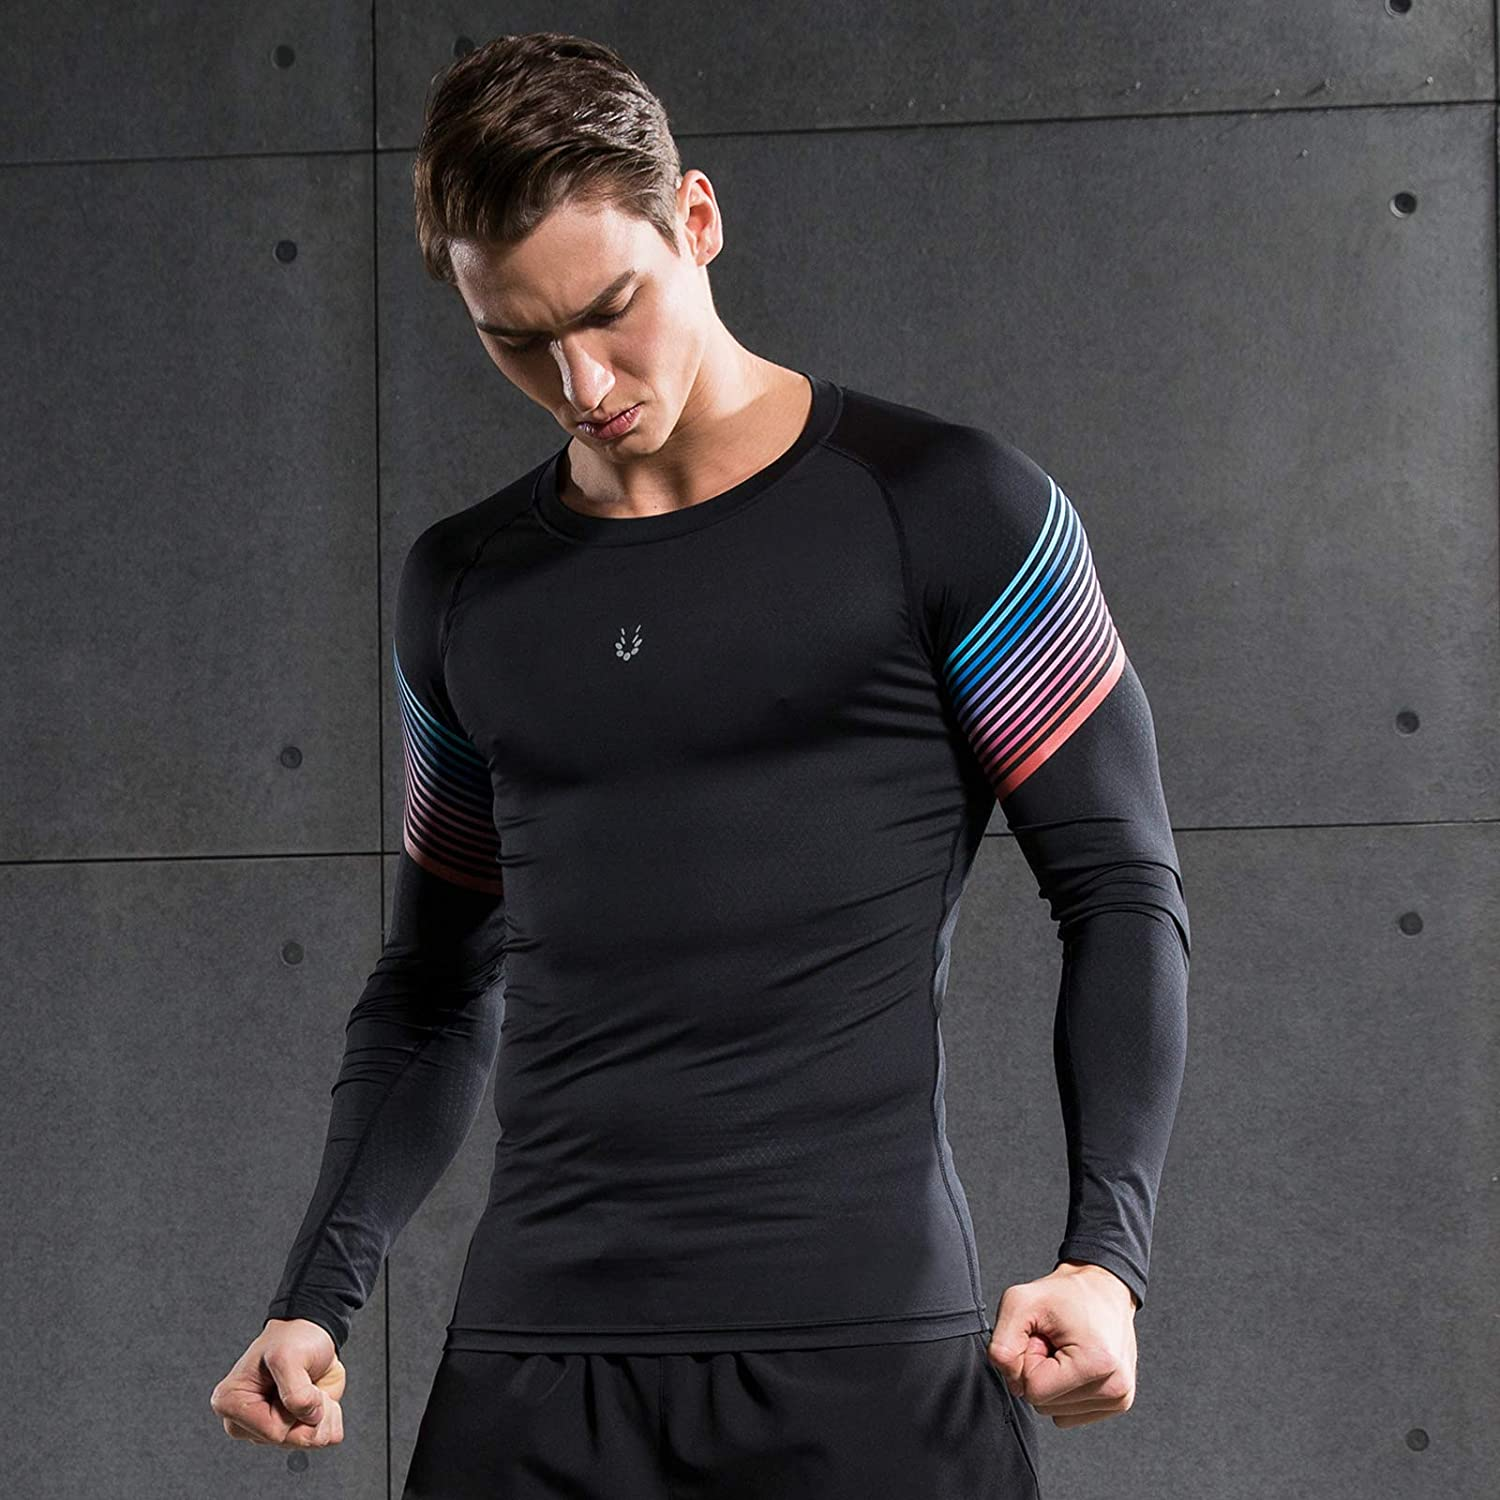 Mudere 1 or 2 Pack Men's Compression Tops Long Sleeve Cool Dry Underwear Shirts Athletic Running Workout T-Shirt Baselayer at  Men's Clothing store